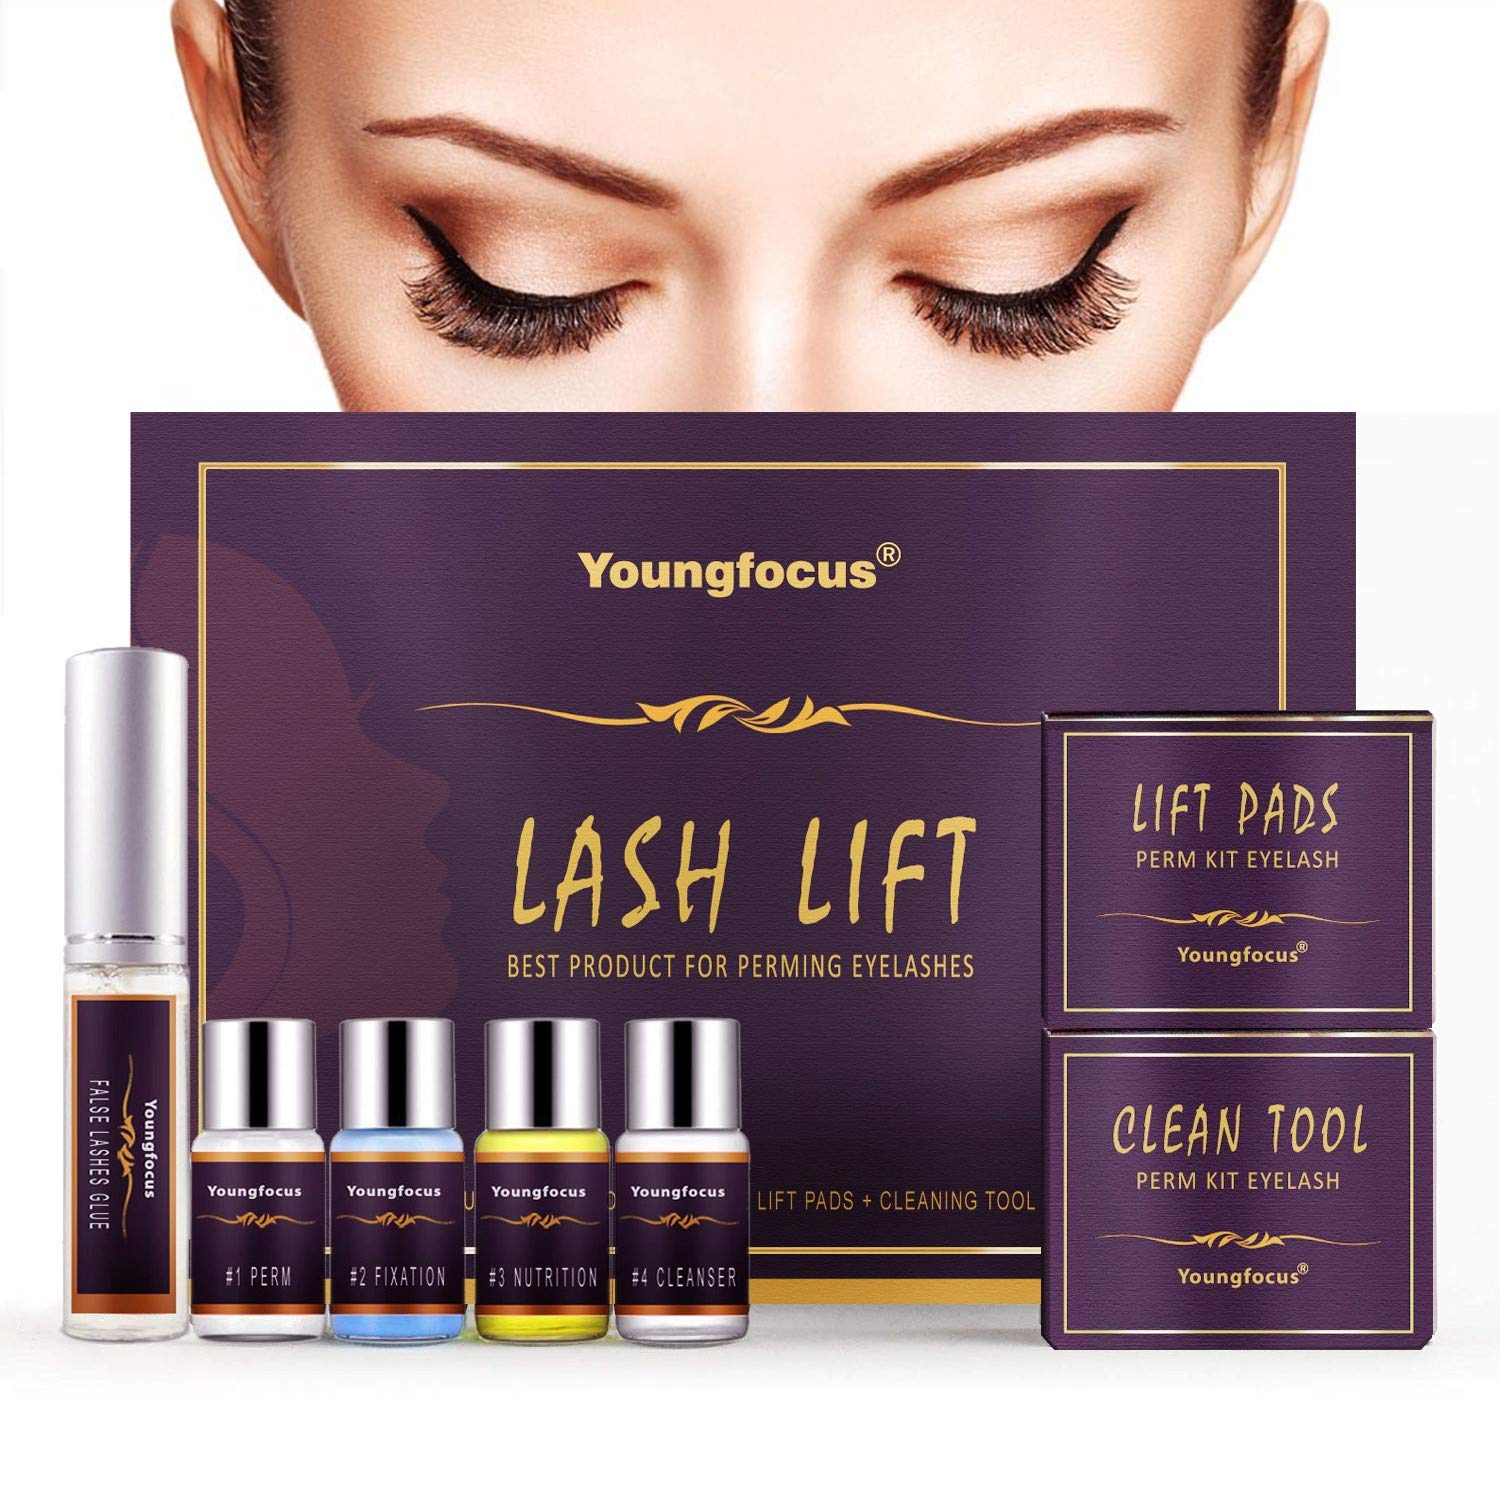 Youngfocus Eyelash Perm Kit, Professional Quality Lash Lift, Semi-Permanent Curling Perming Wave, Curler Kit,Lotion & Liquid Set